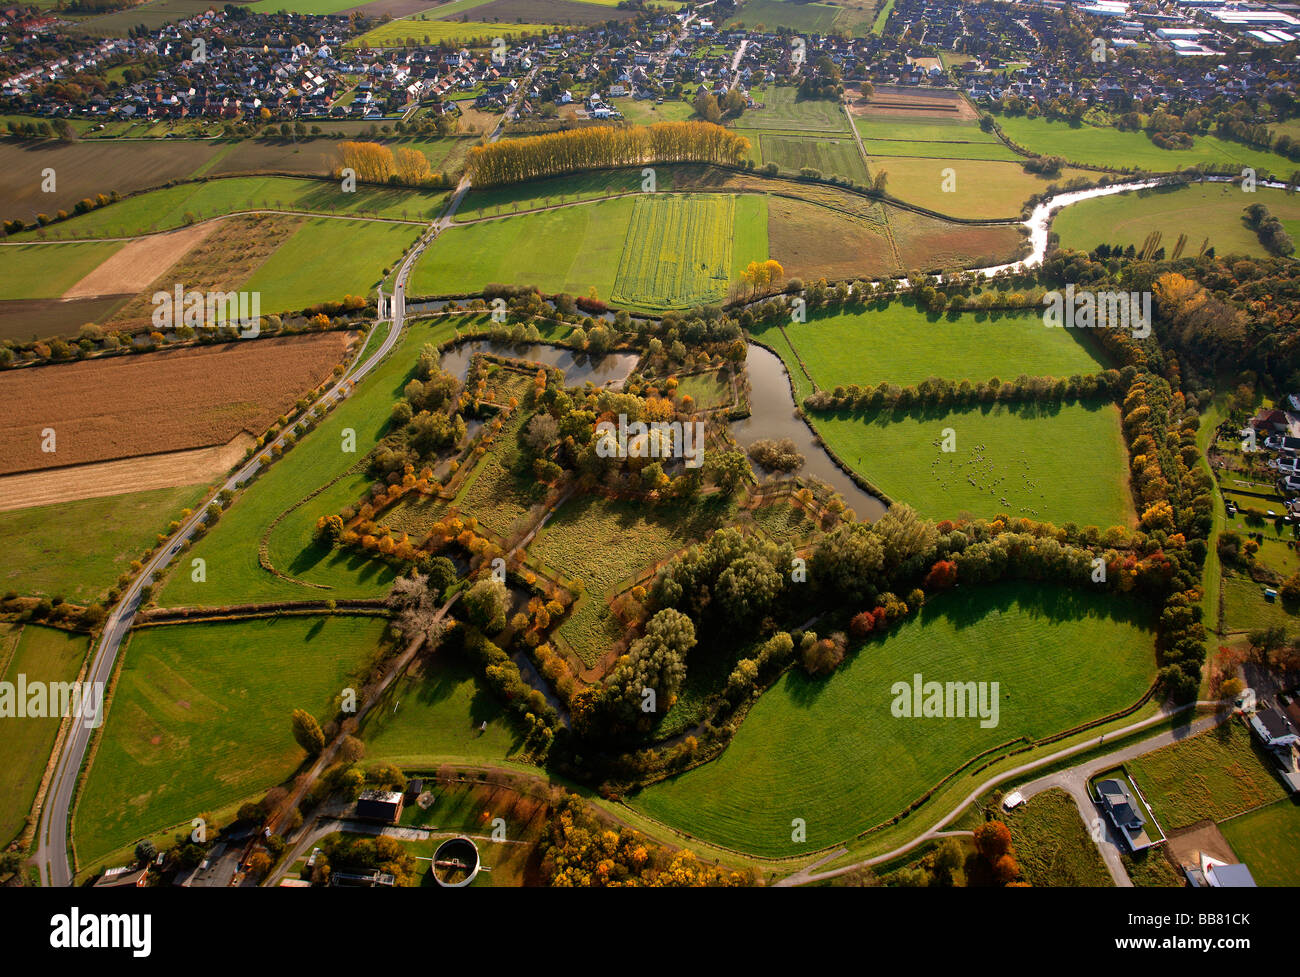 Aerial photo, castle ruins of Bernhard II near Lipperode, star shaped, moats, Lippe, Lippstadt, Soest District, - Stock Image